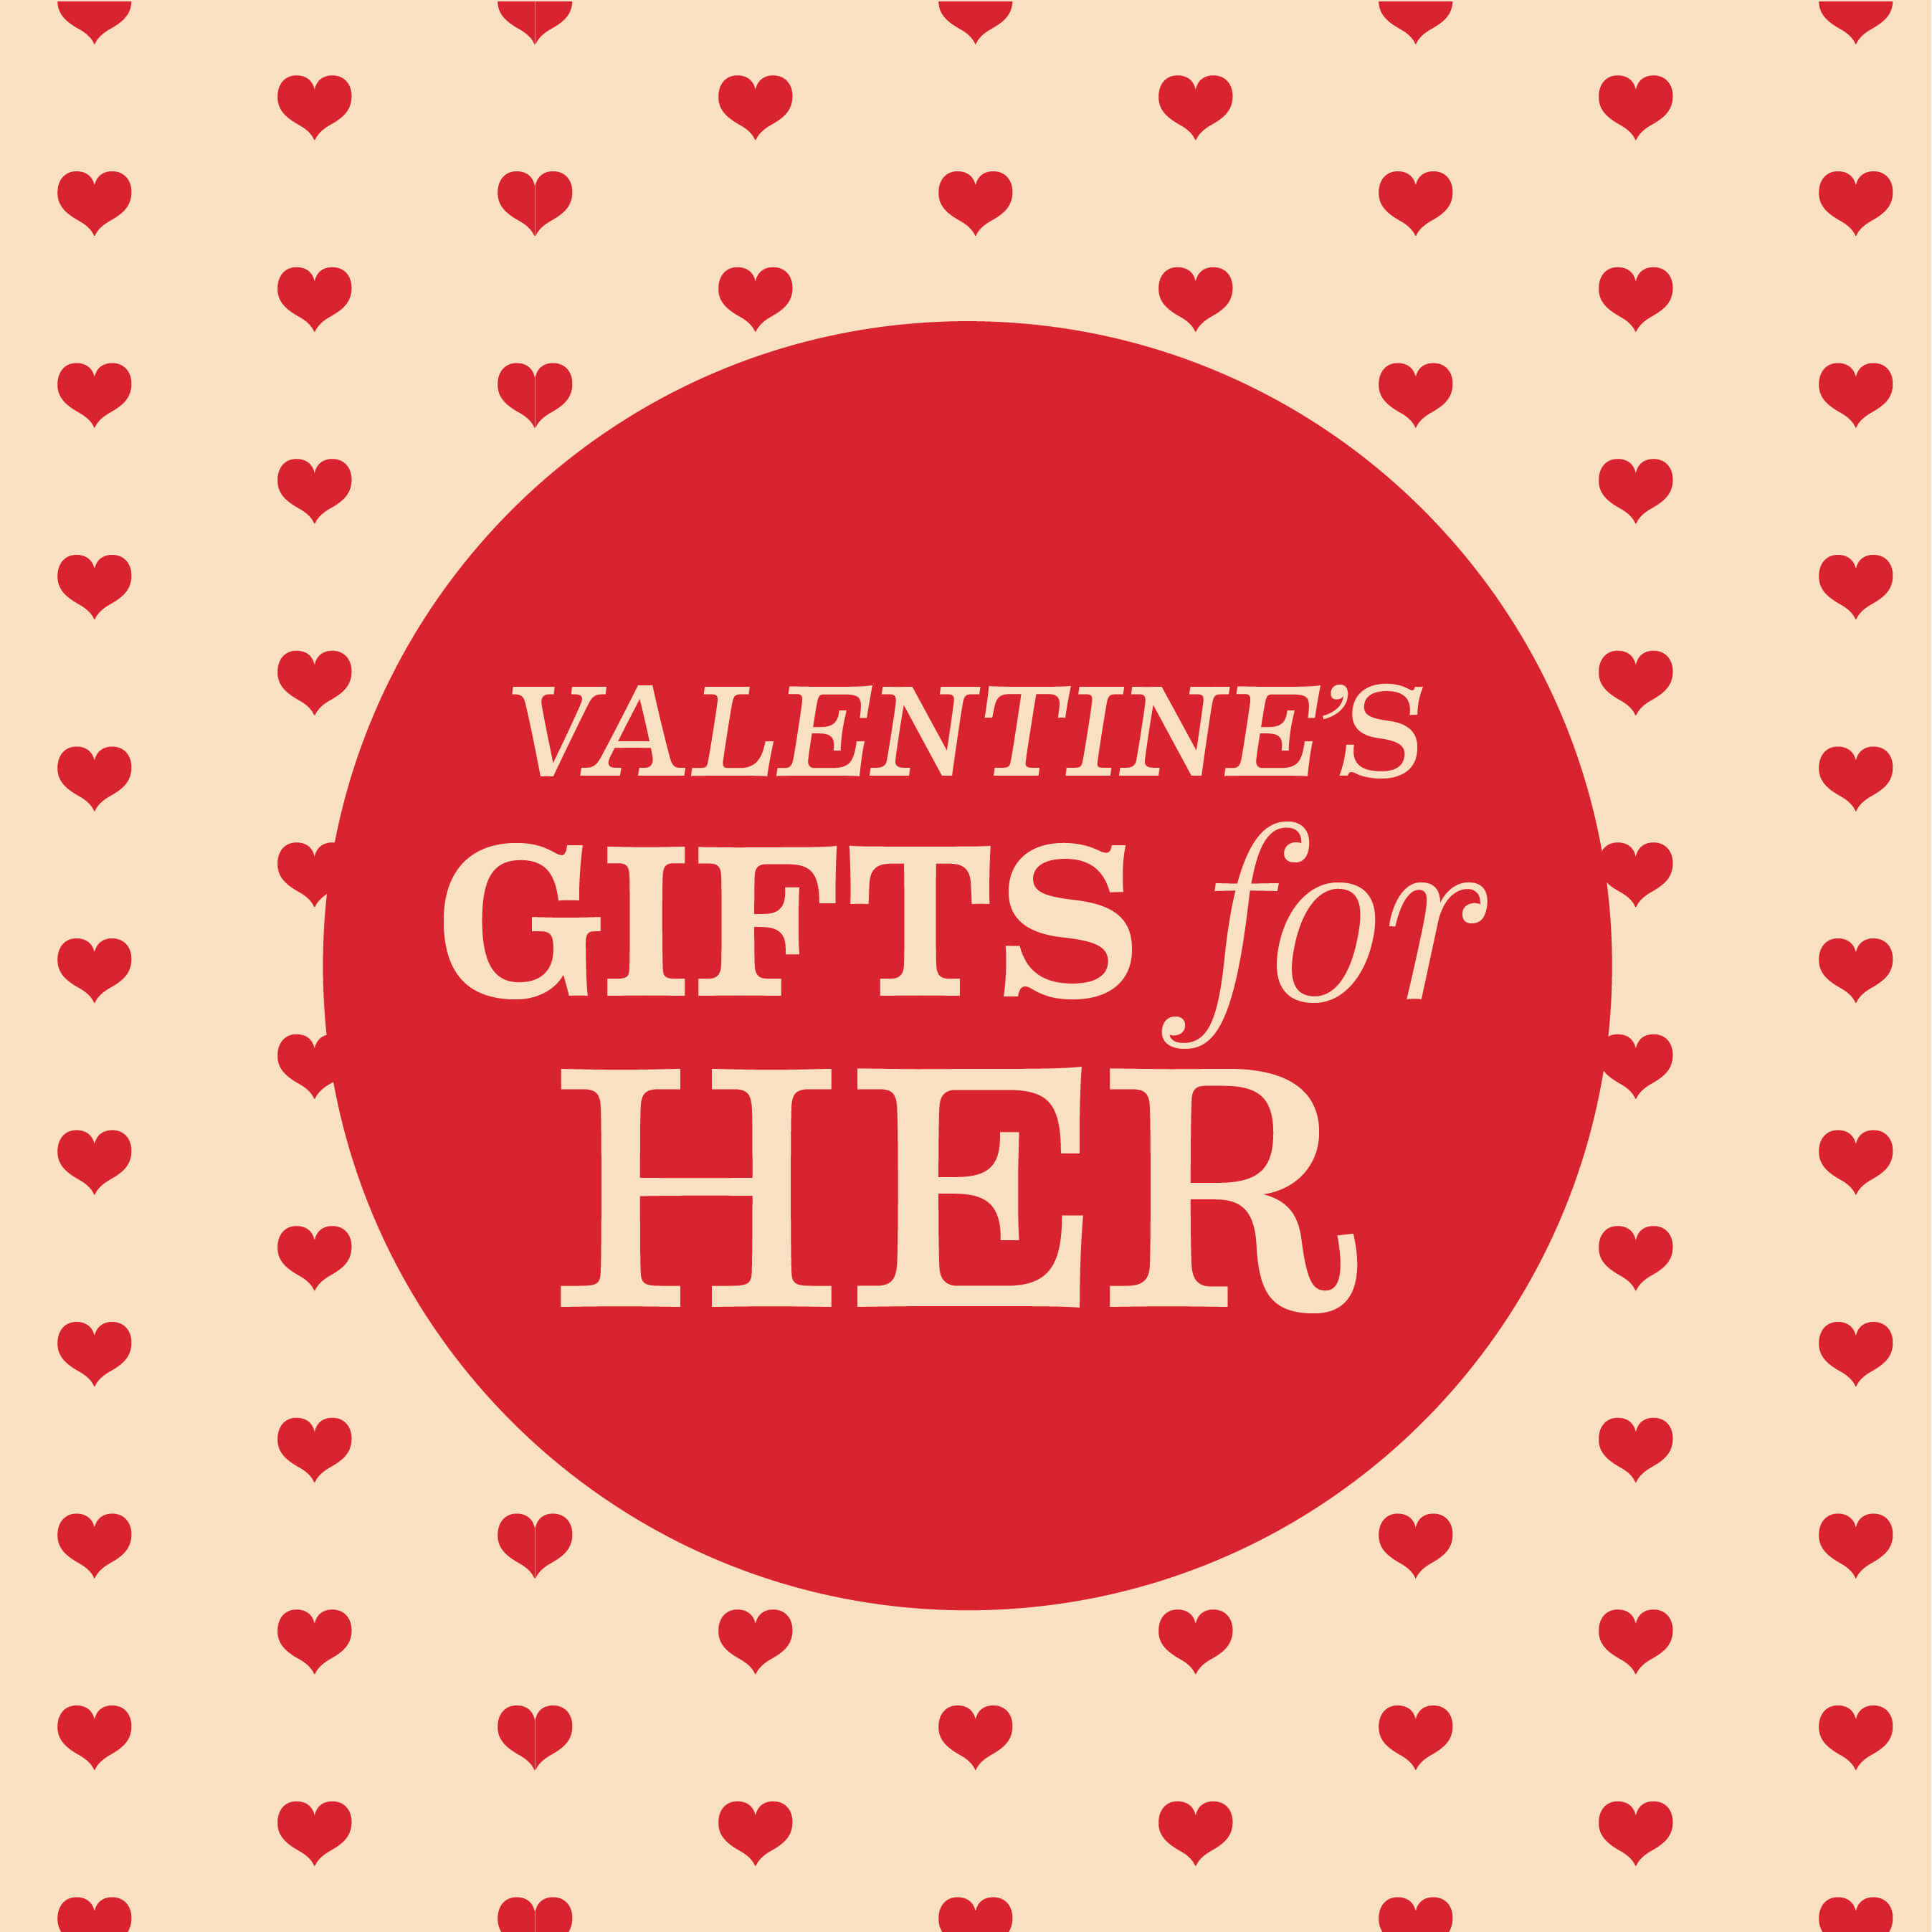 Valentines Gifts For Her Thumbnail V2